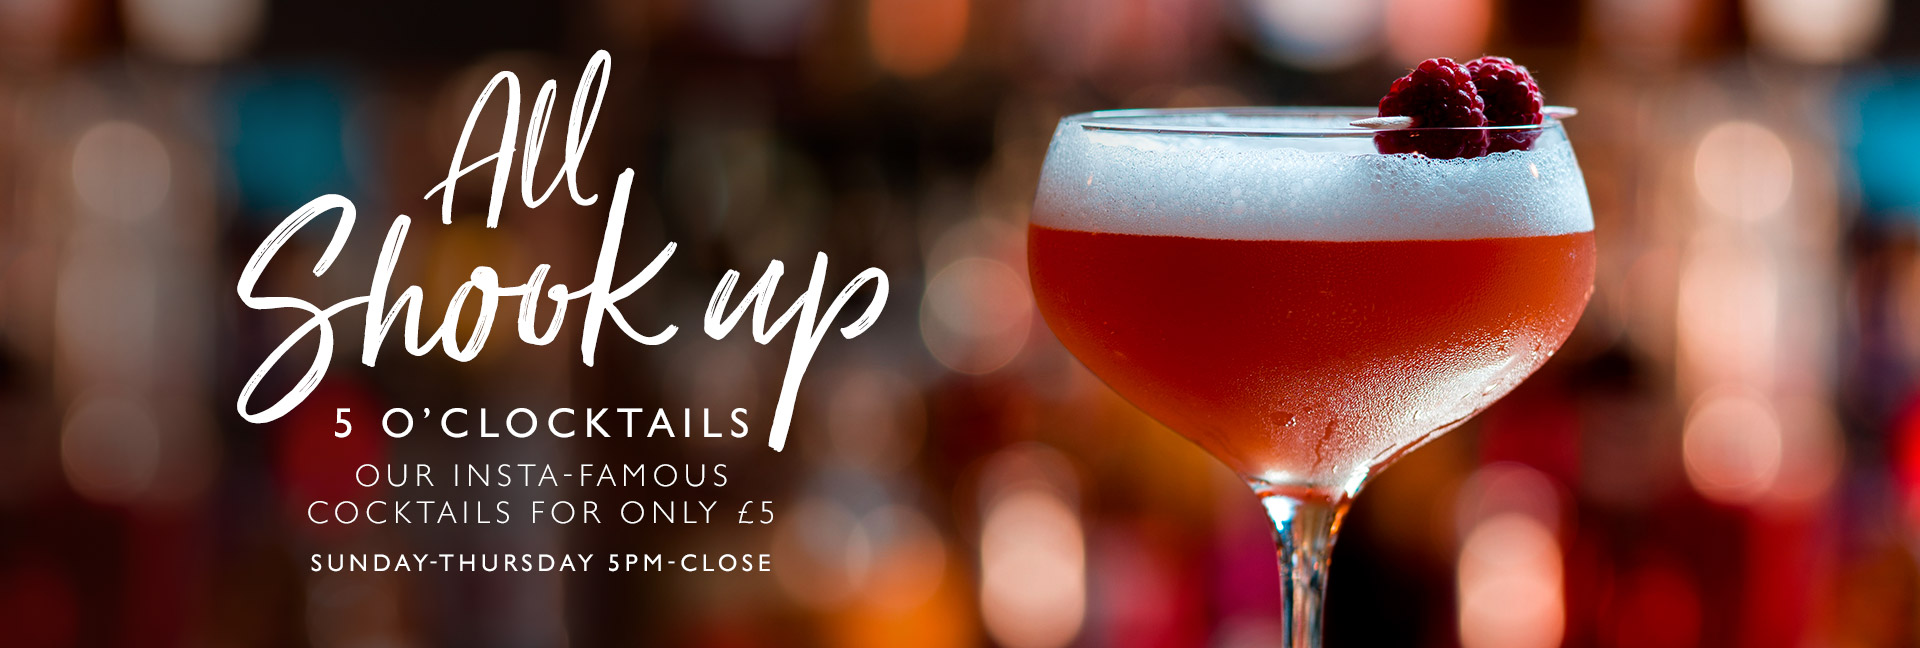 5 O'clocktails at All Bar One St Pauls - Book now